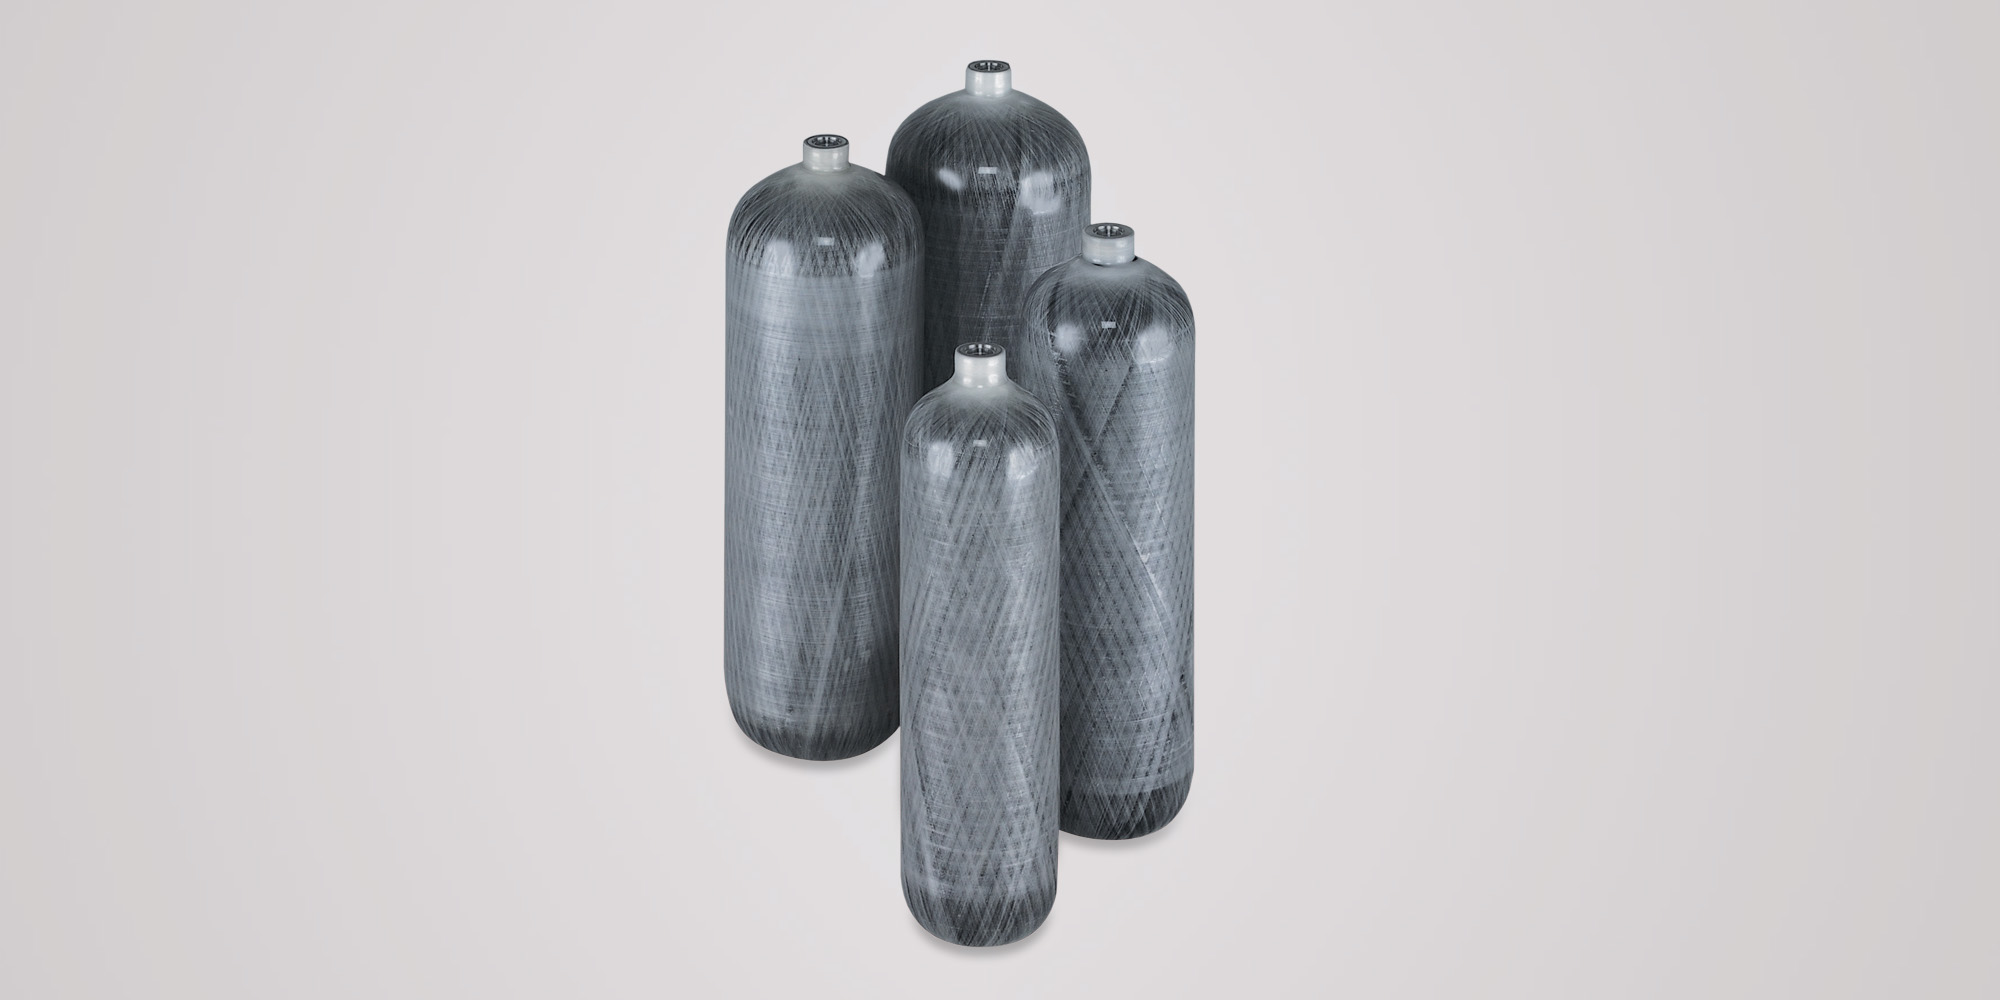 LCX®-SL composite SCBA cylinders